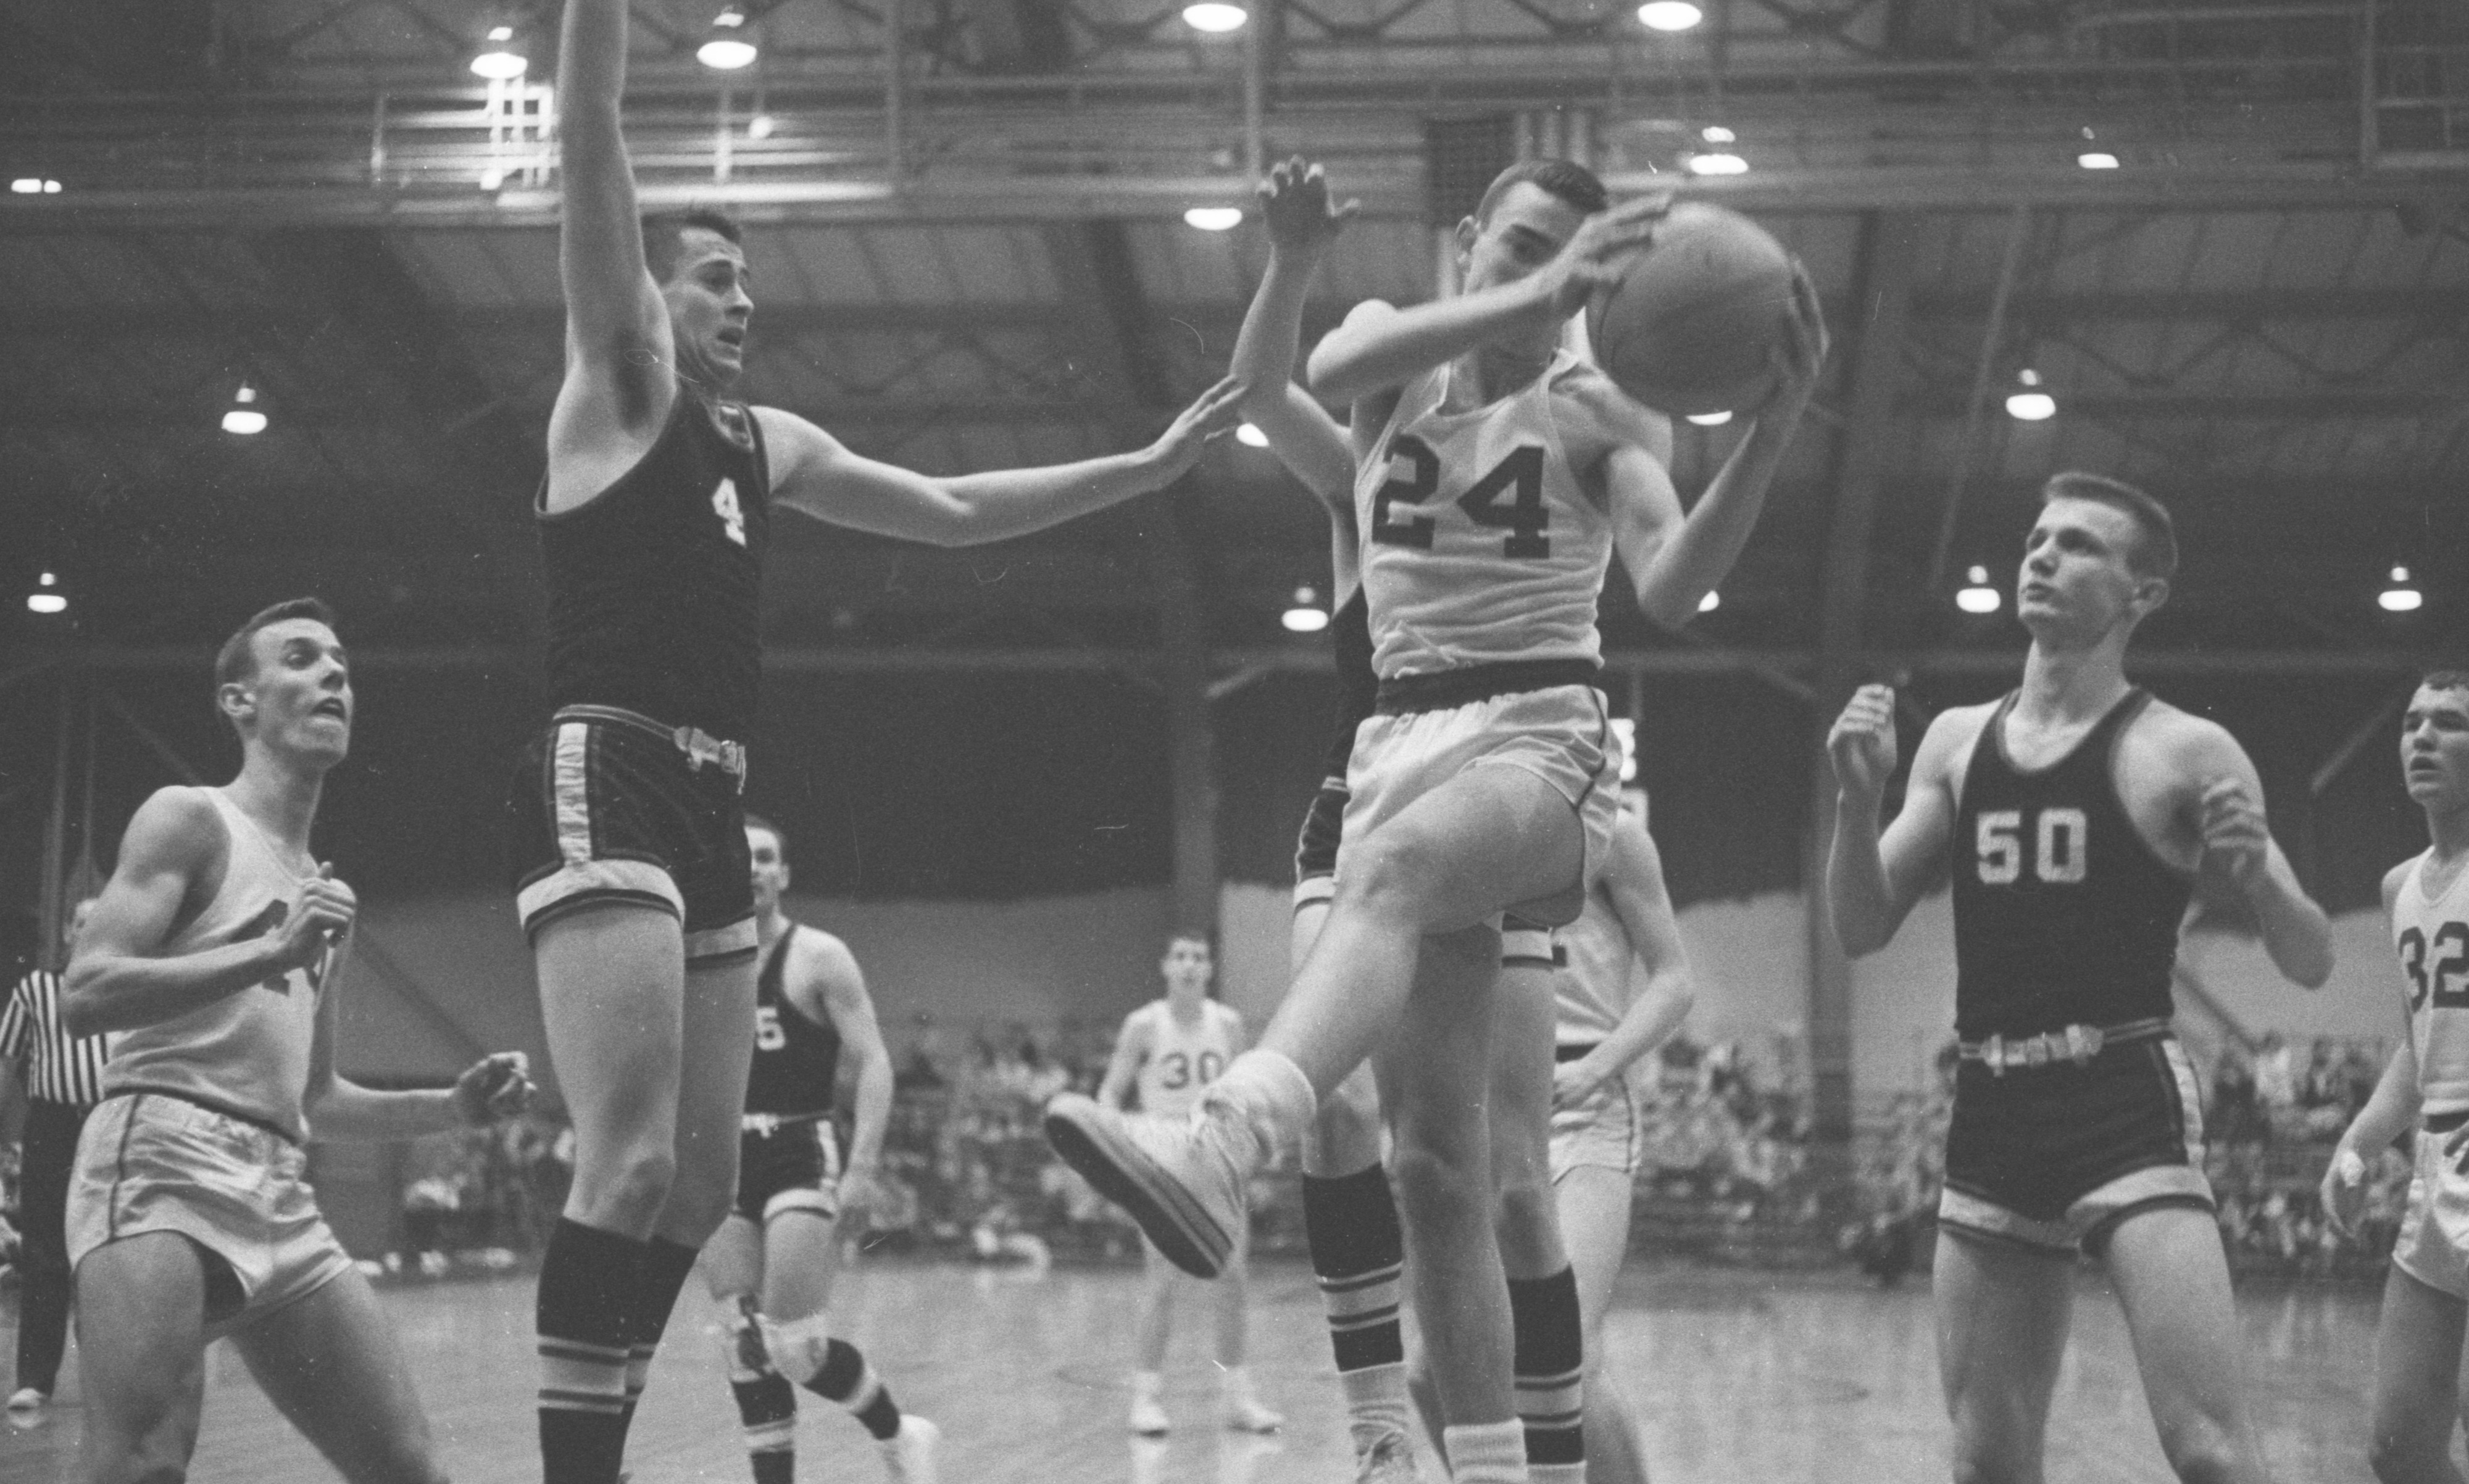 University High School Battles Addison In Regional Basketball Tournament, March 1960 image